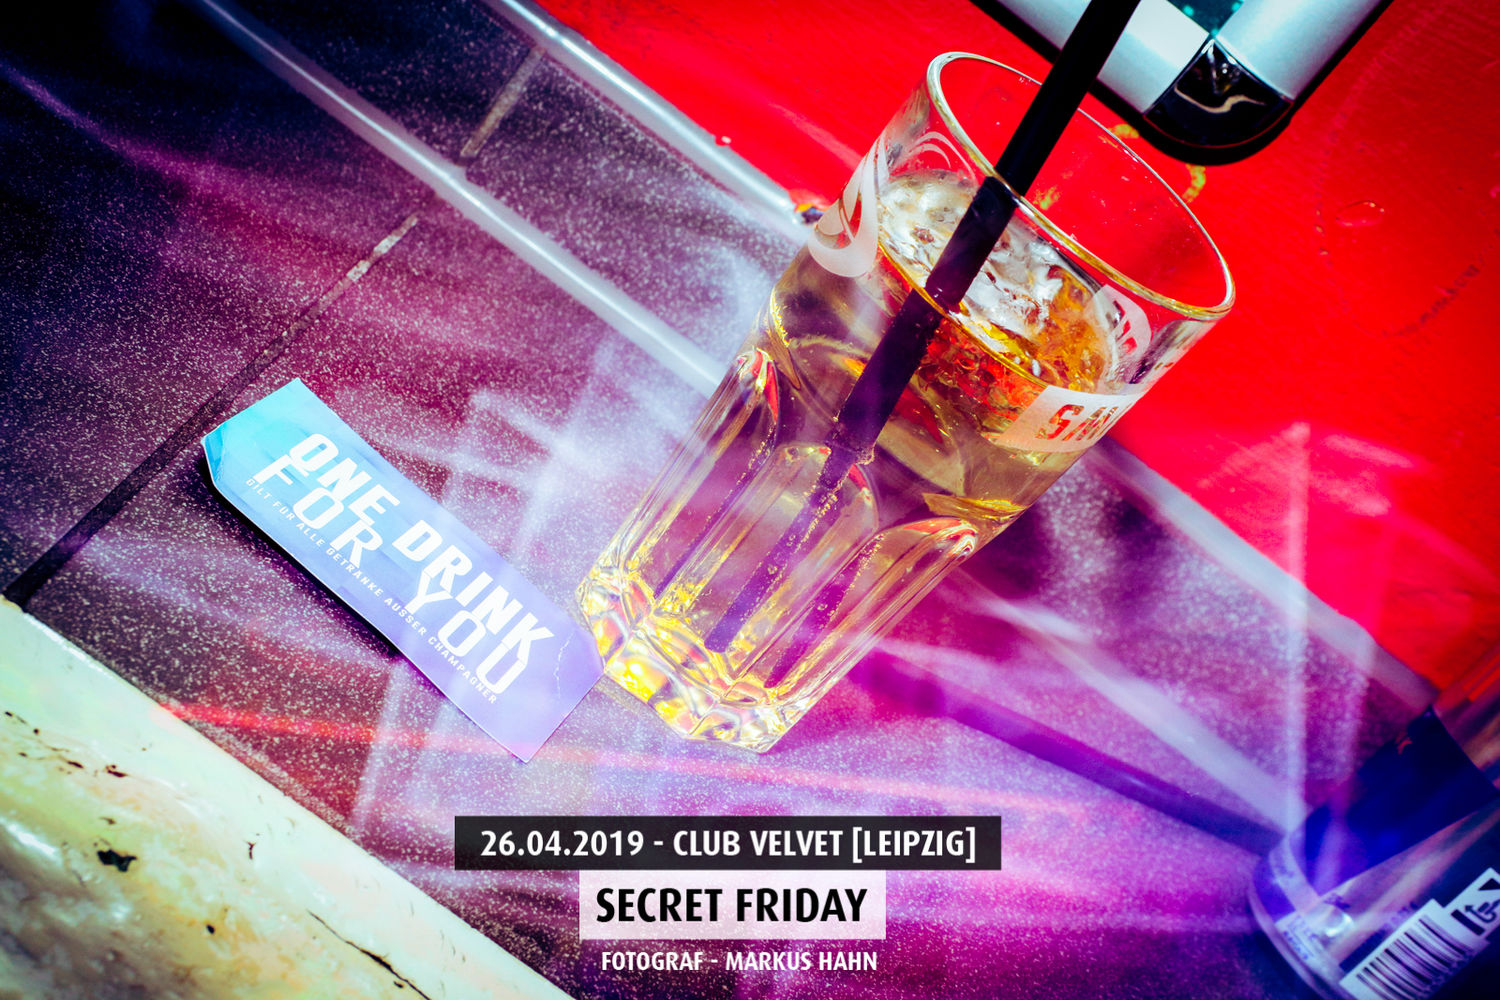 secret-firday-club-velvet